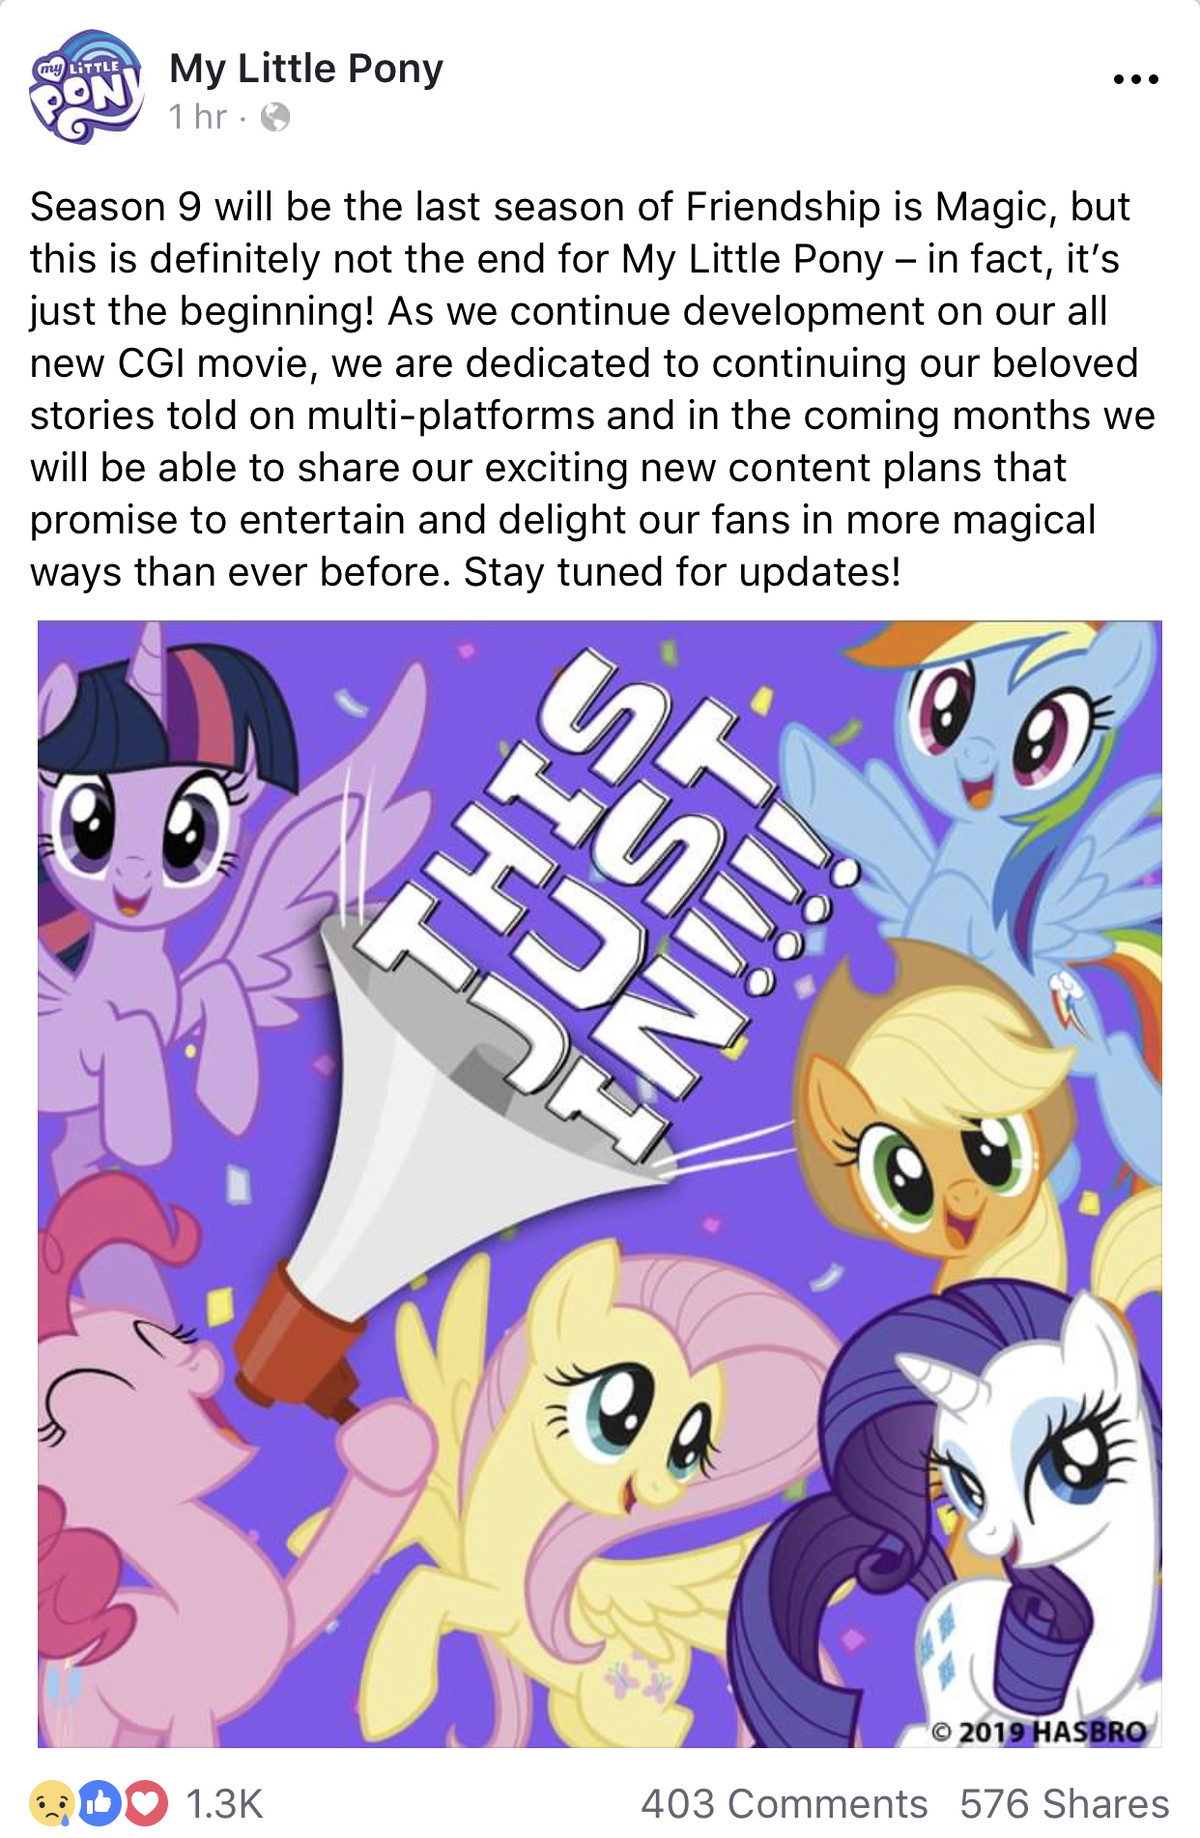 Final word. Everyone expected it but today they finally said it. MLP is done, don't know about you guys but Im gonna be cutting ties with everything mlp afterwa